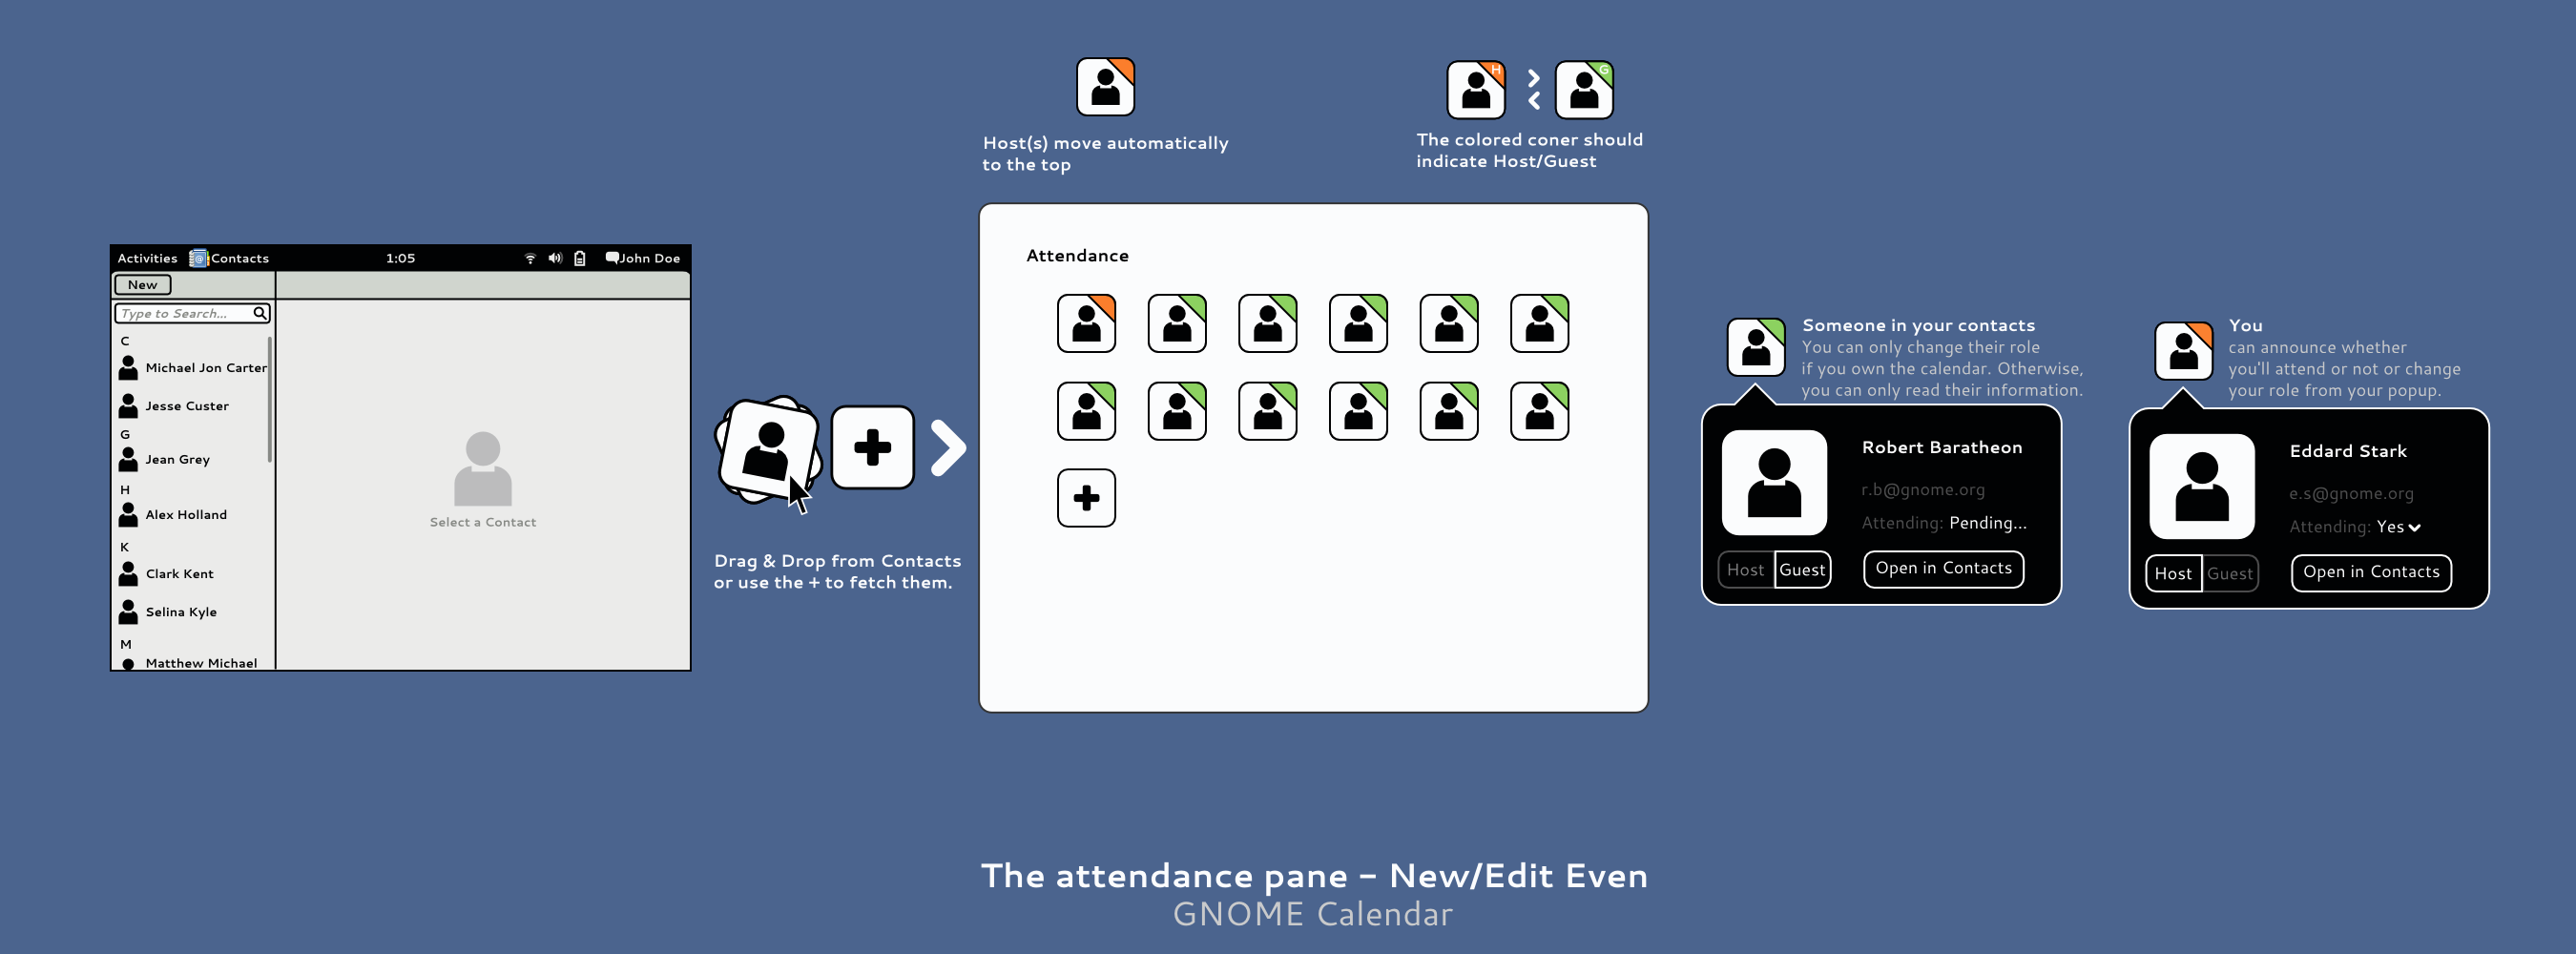 Attendance_panel_features_explained